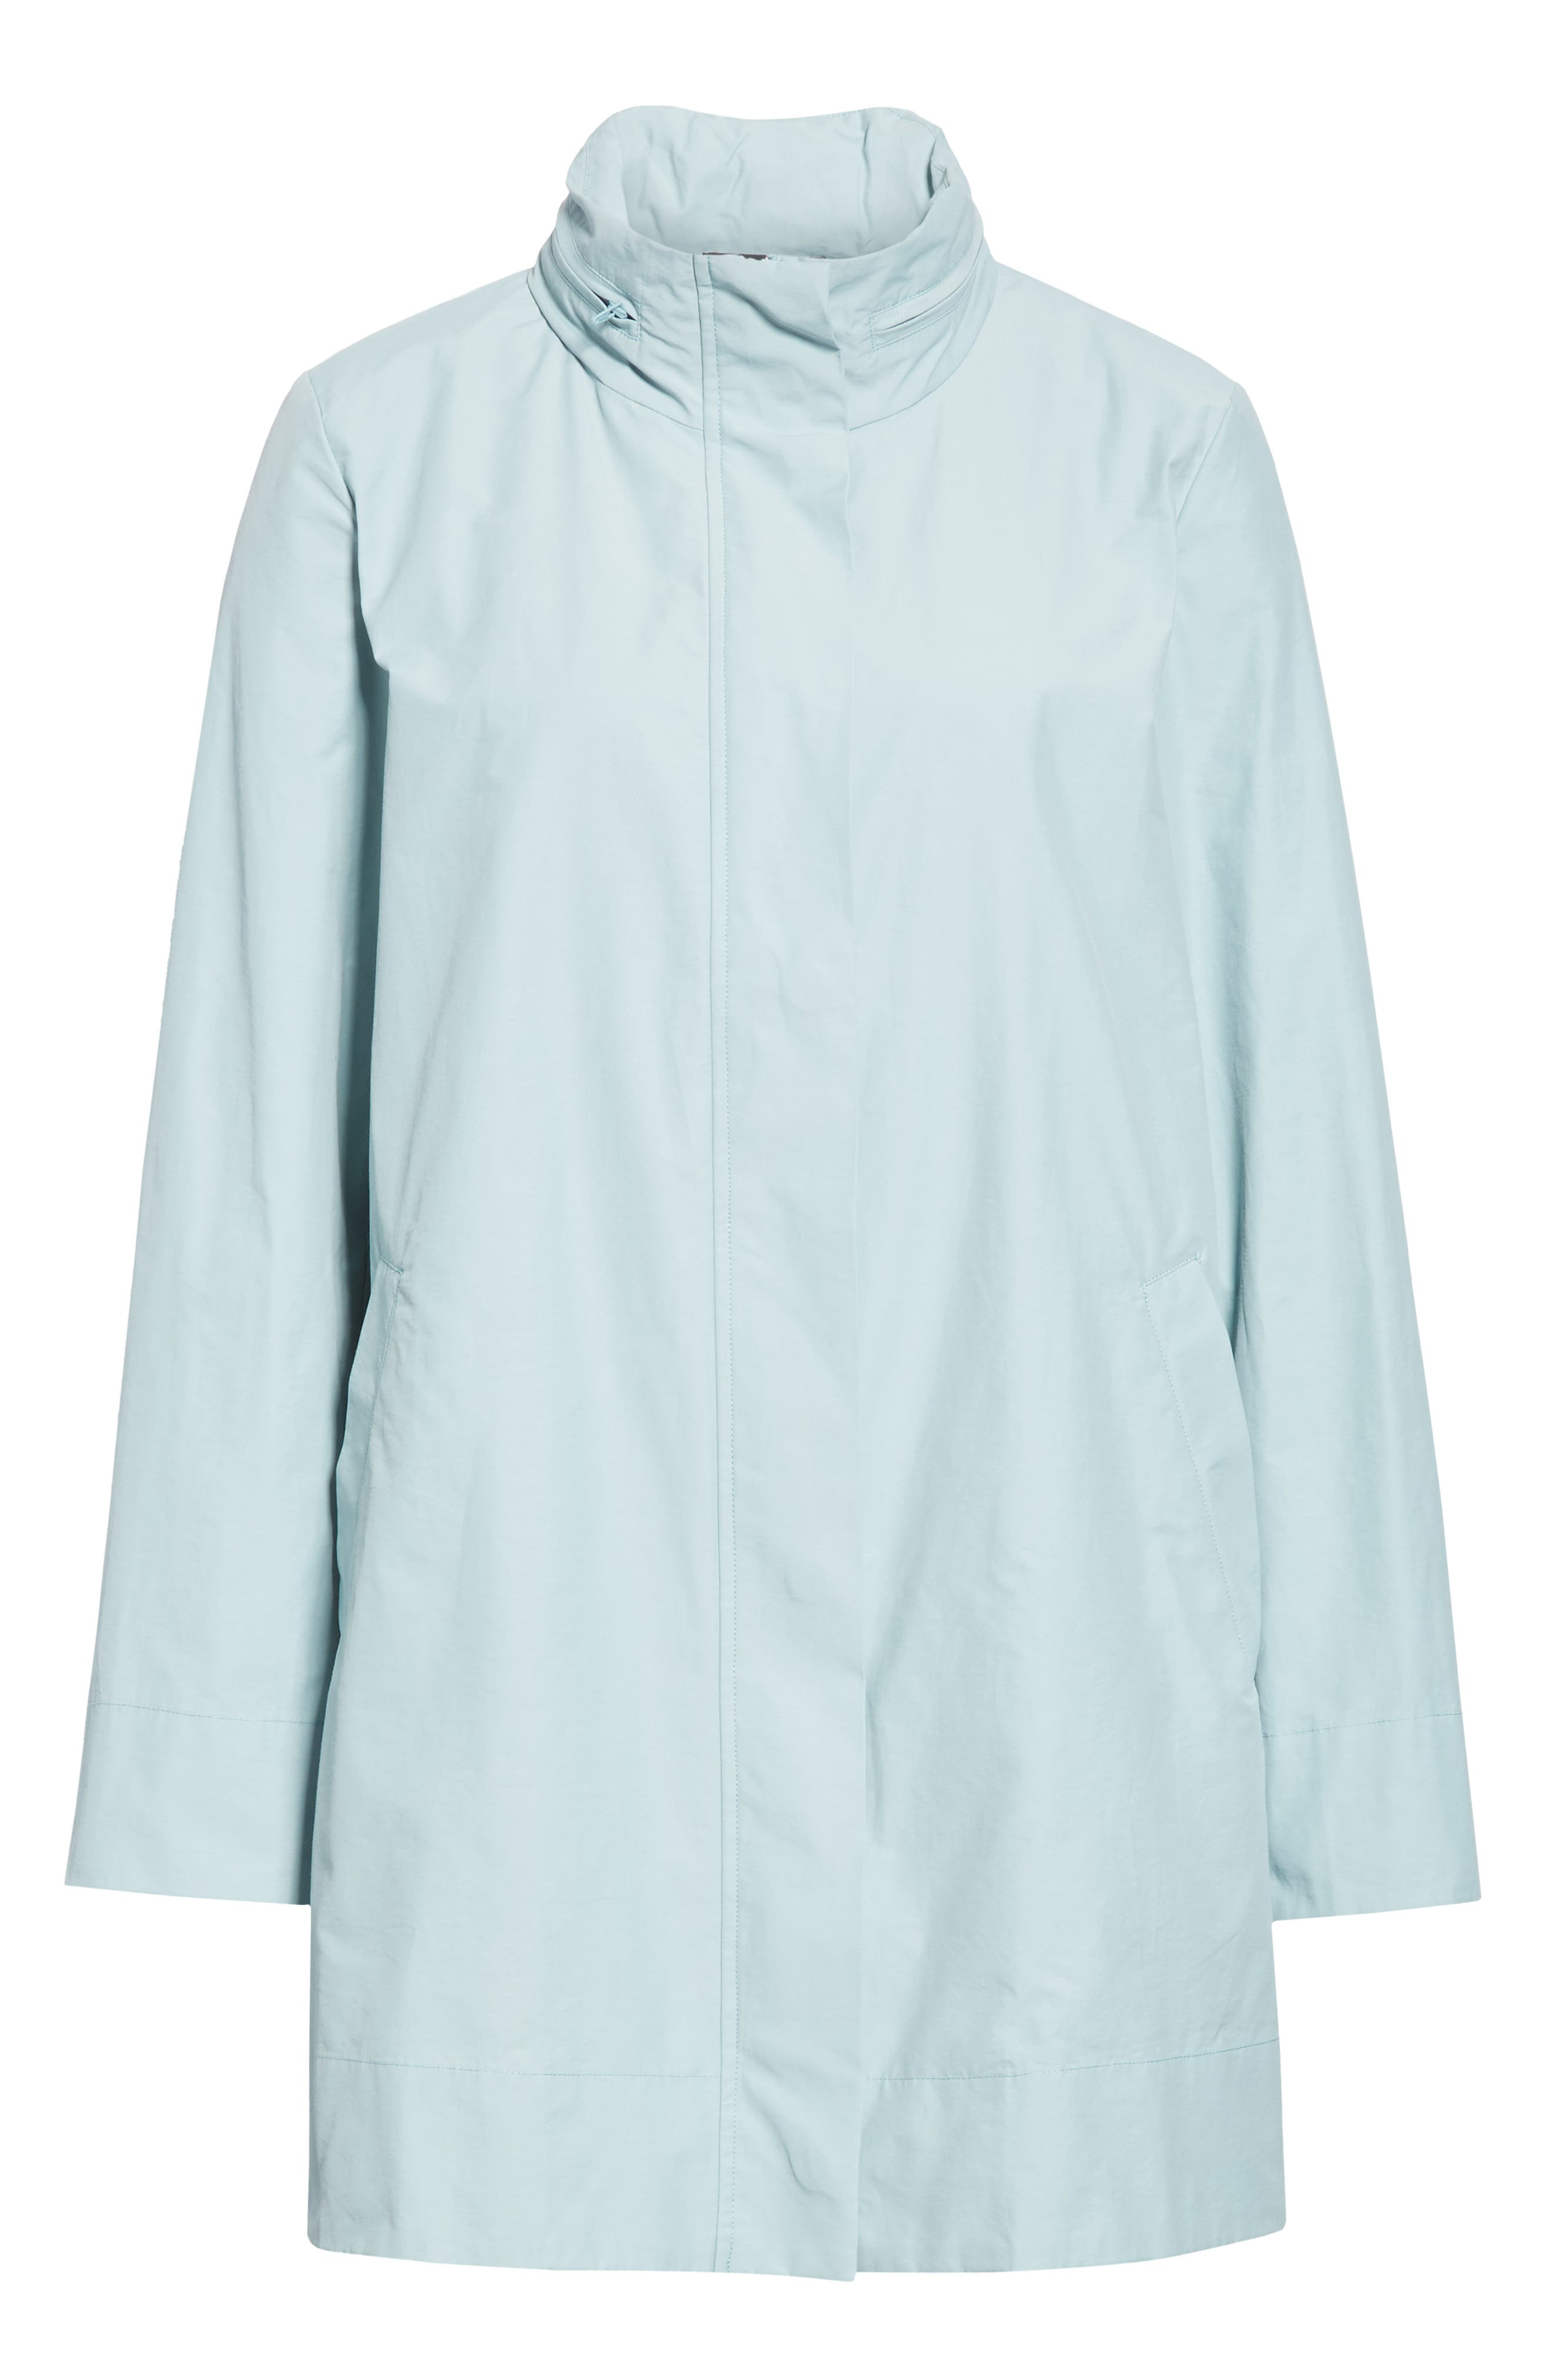 EILEEN FISHER,                             A-Line Jacket,                             Alternate thumbnail 6, color,                             BLUE IVY